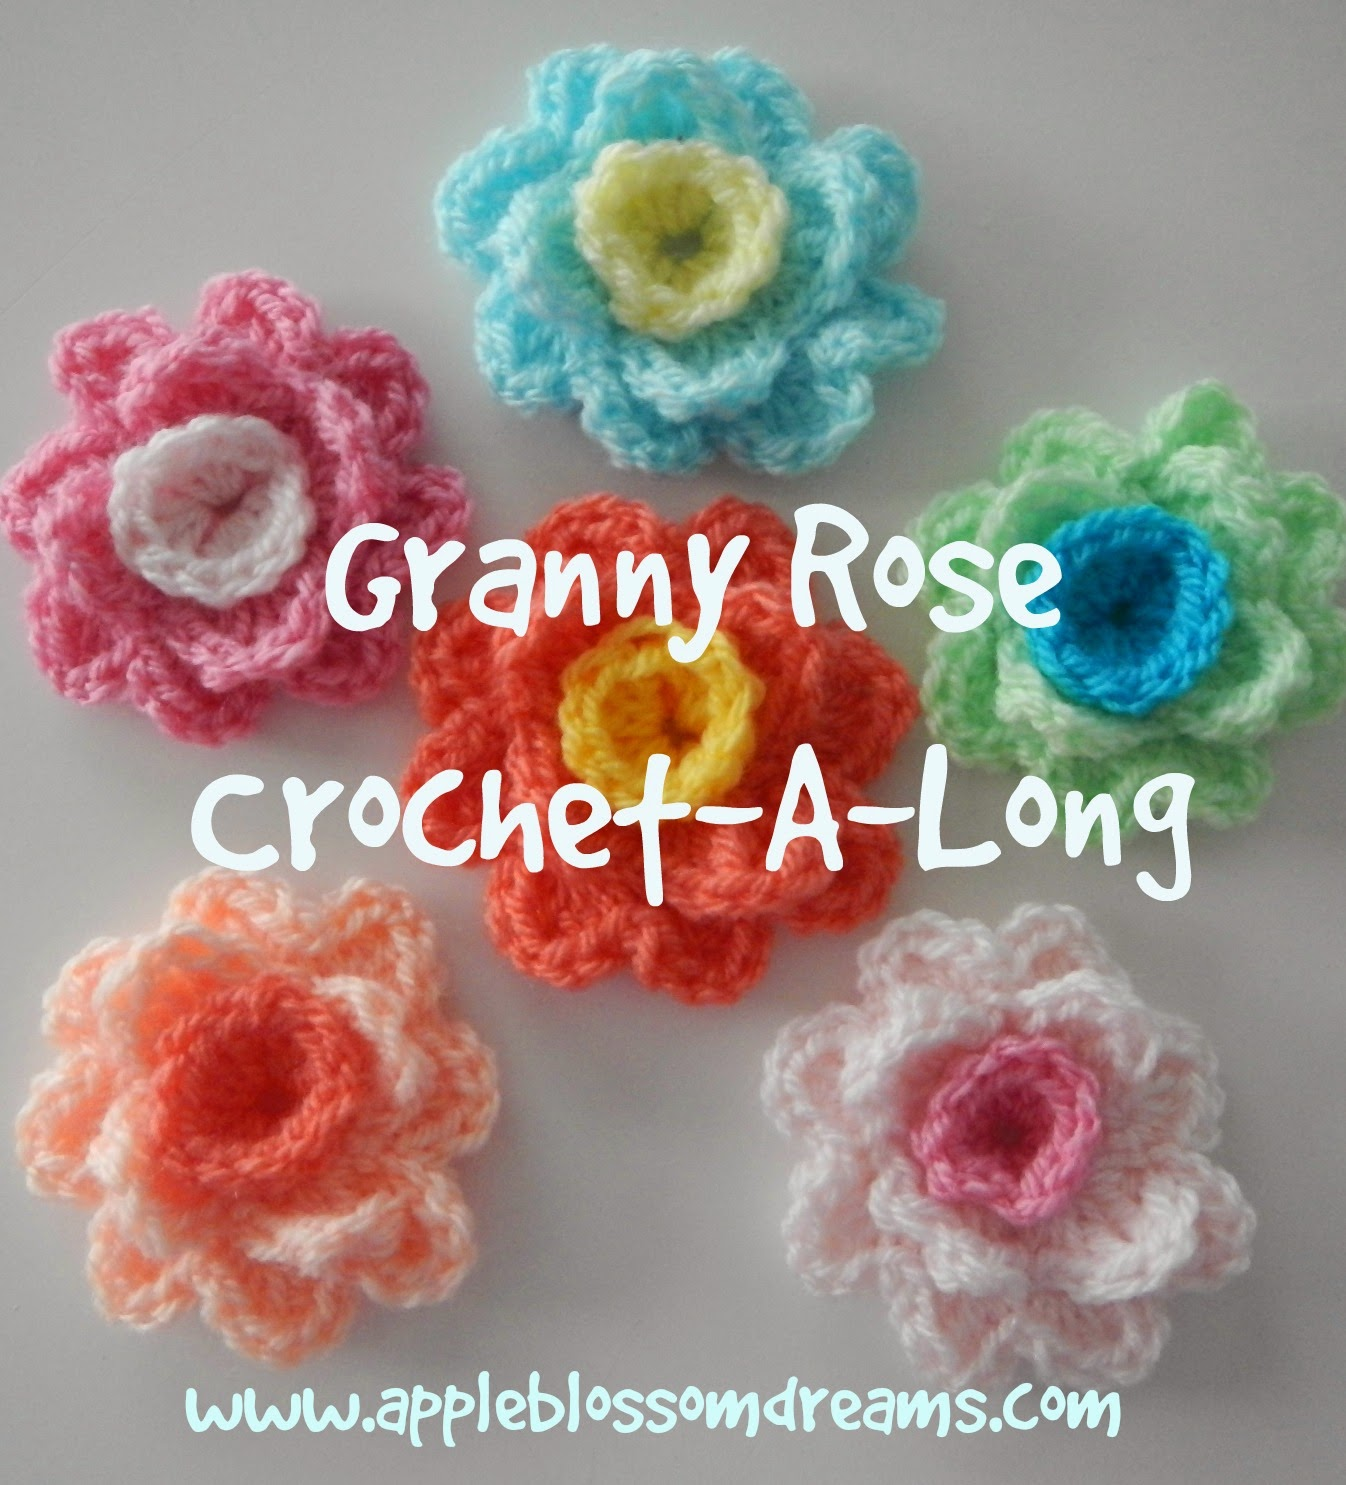 Join along and crochet with us: